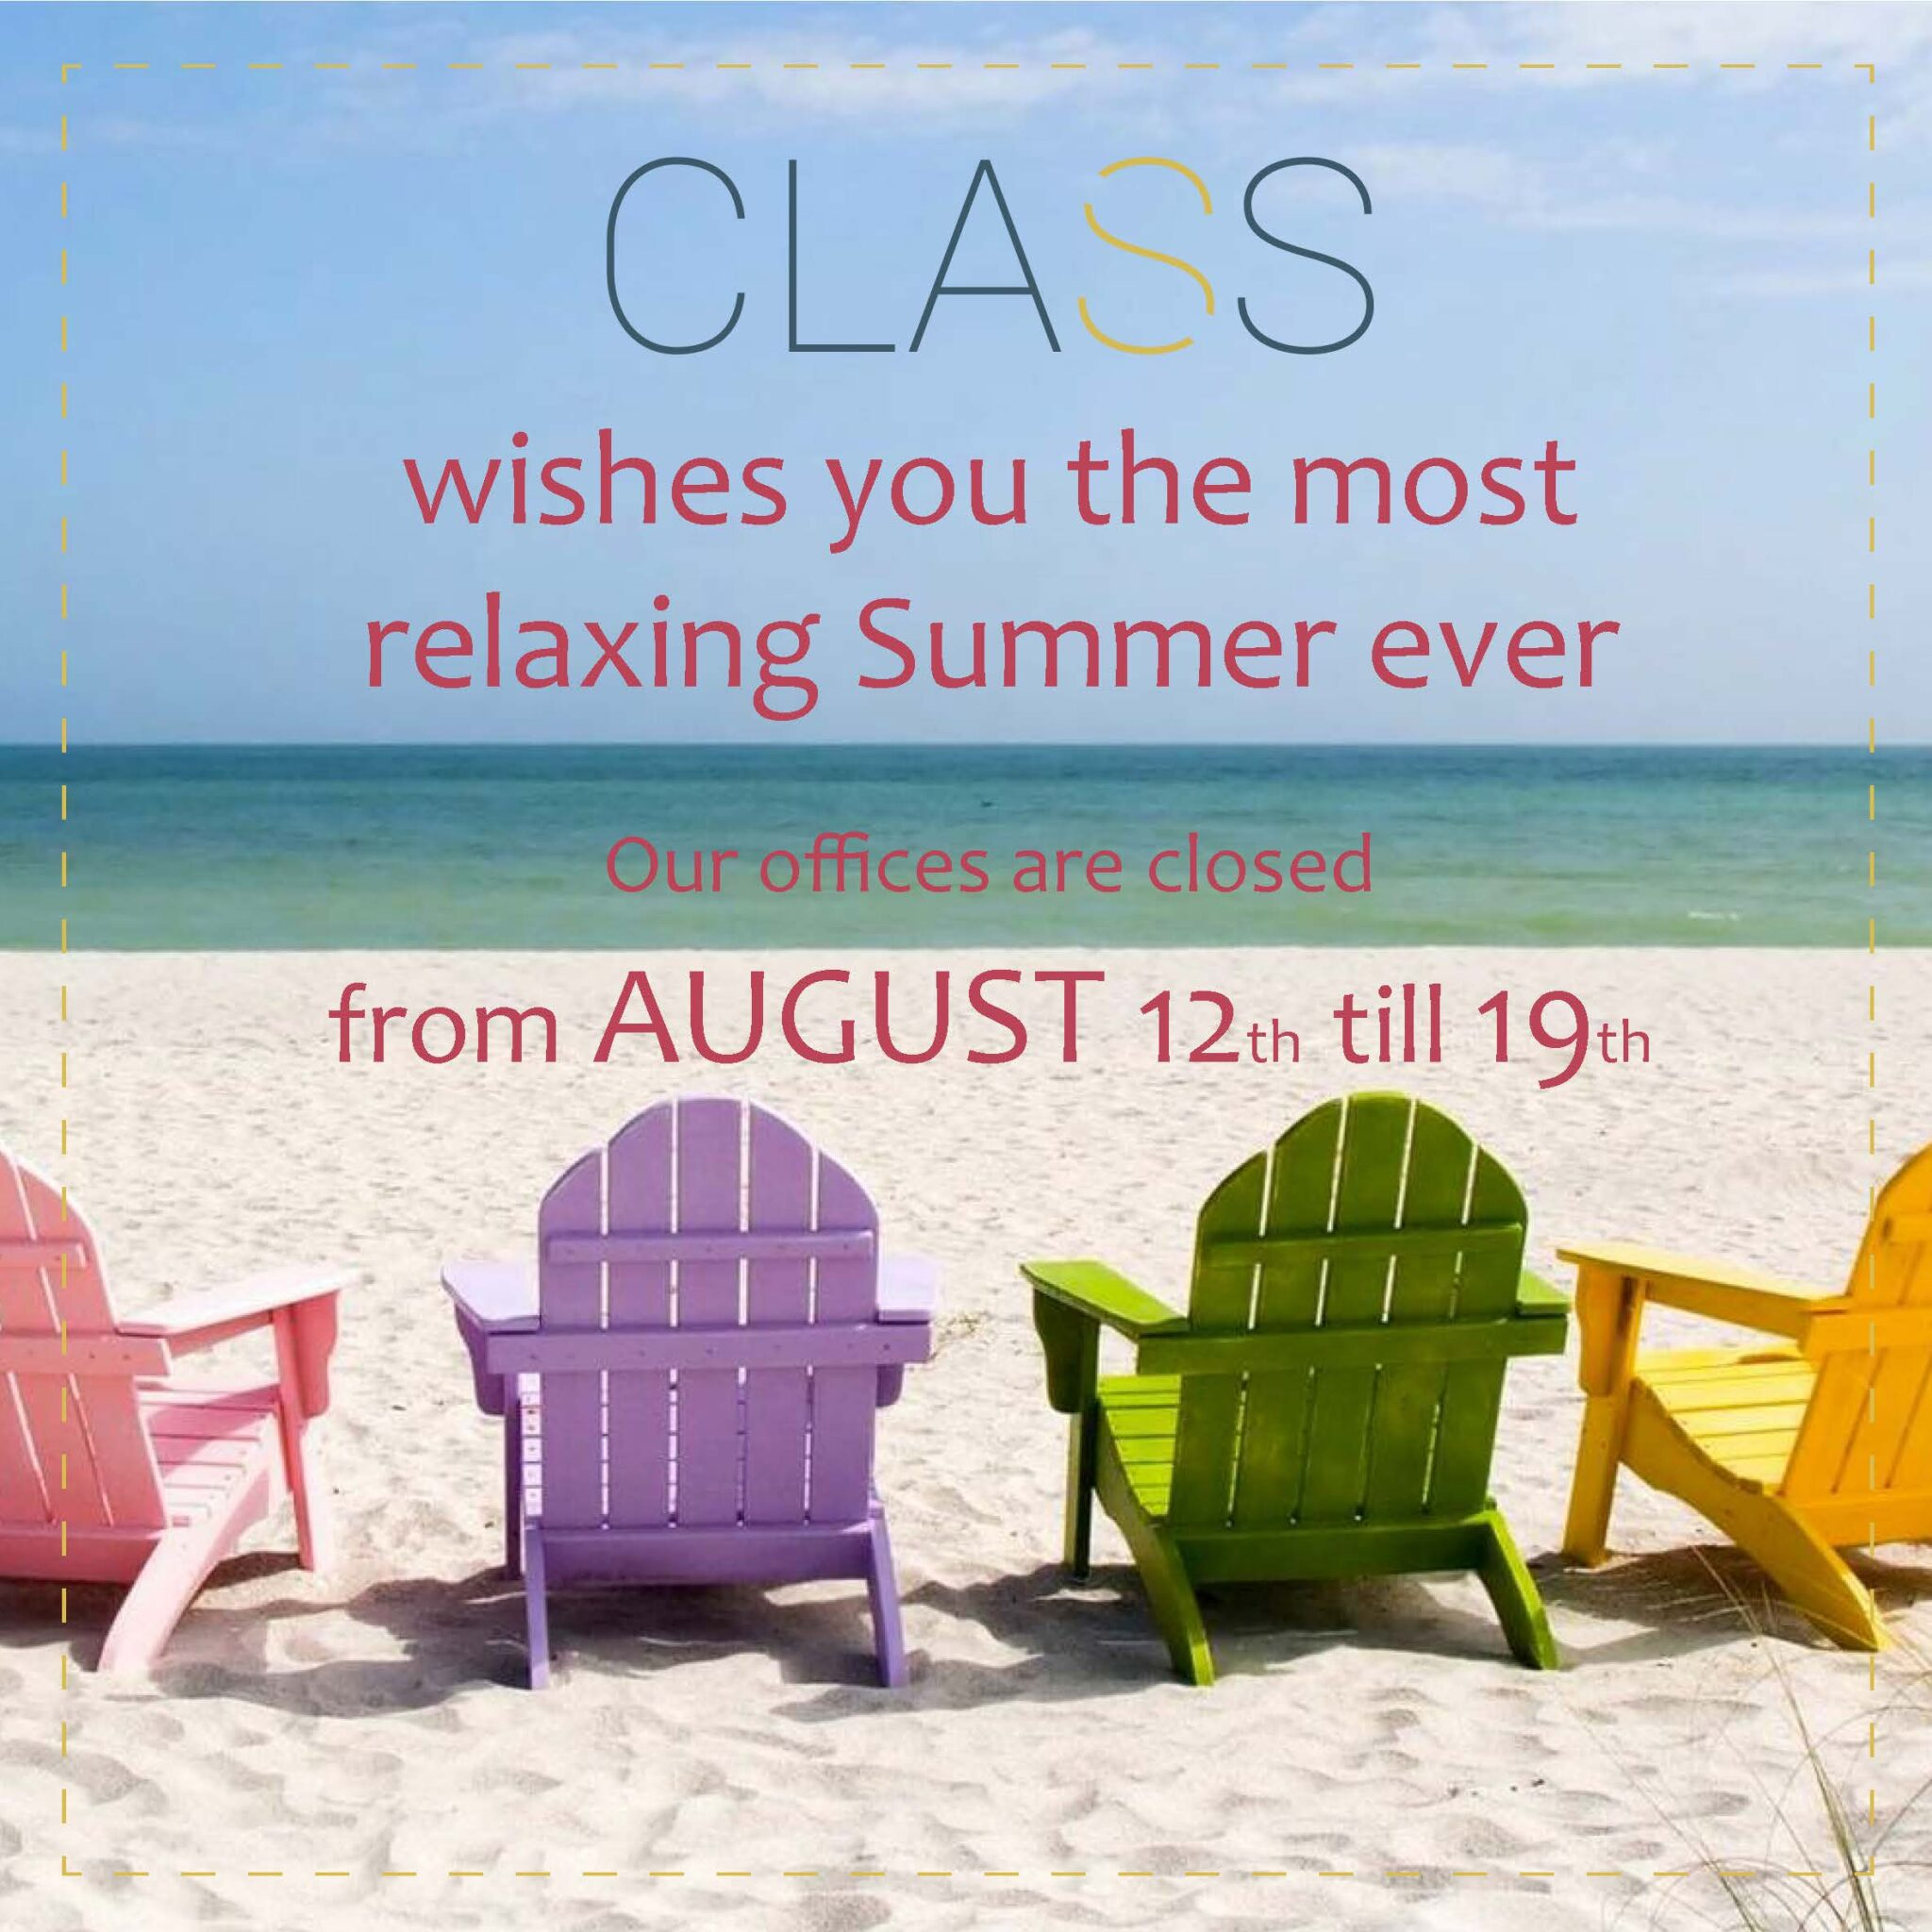 C.L.A.S.S. wishes you all an amazing Summer!